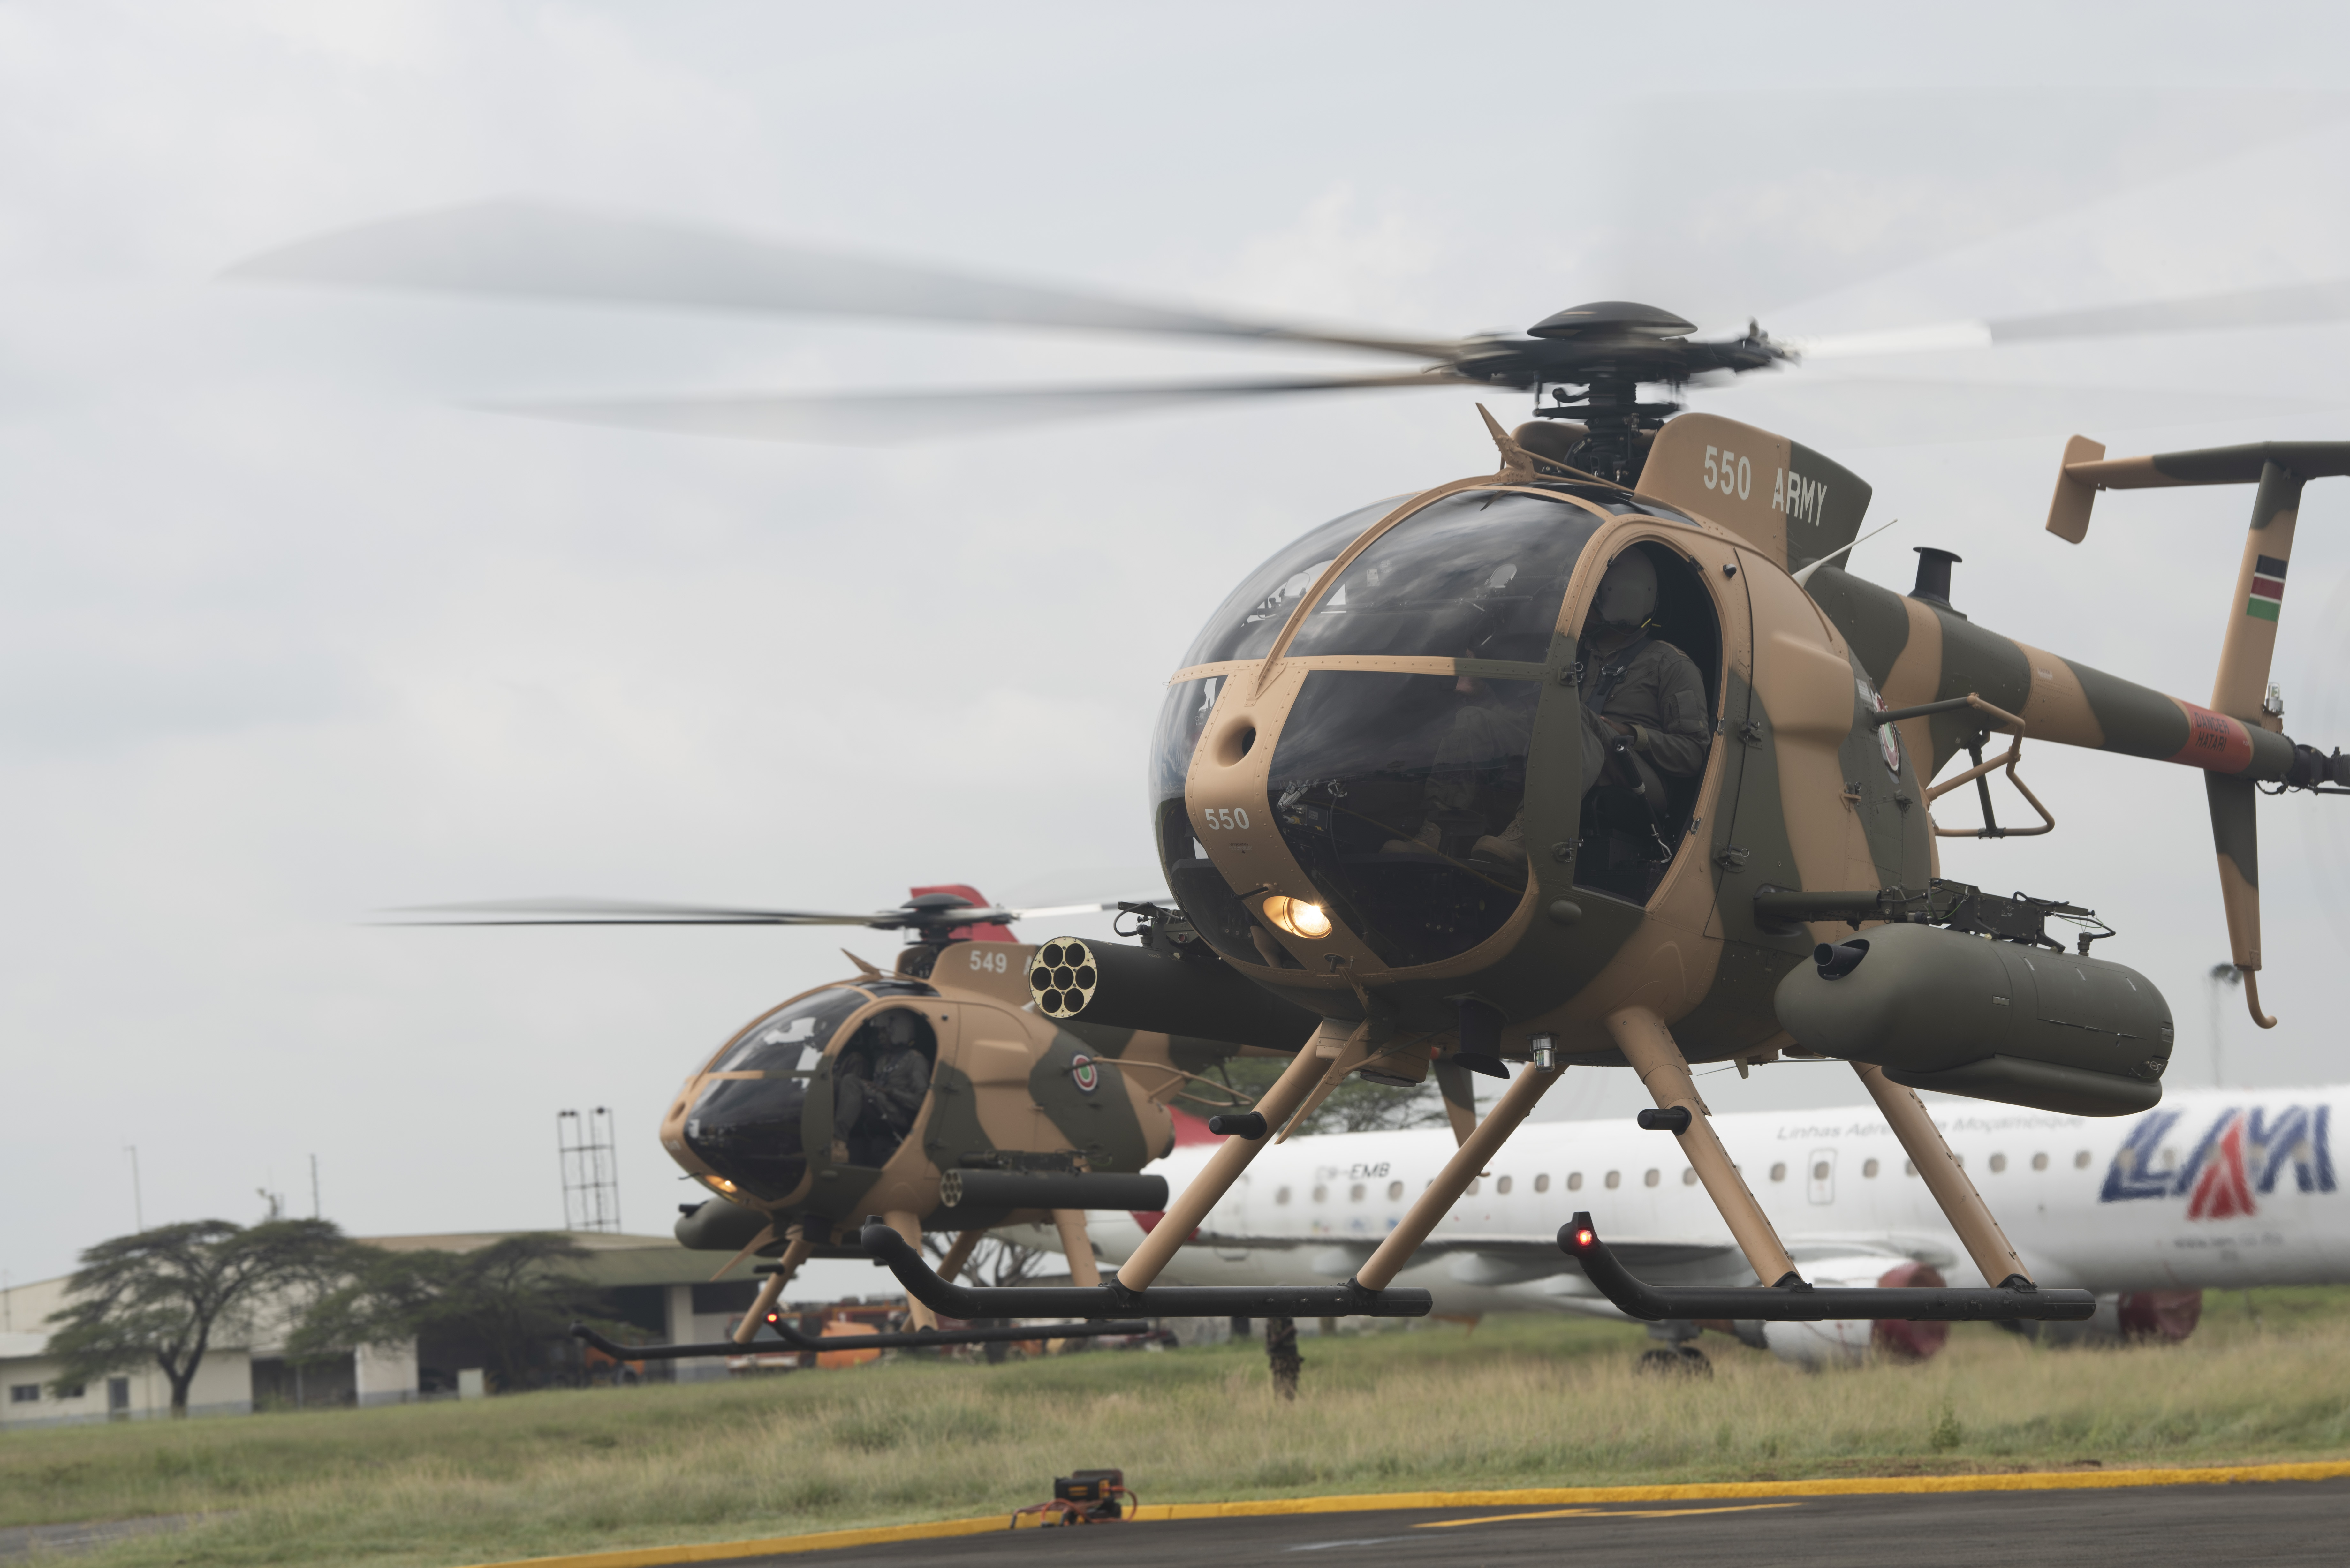 Two MD-530F Cayuse Warrior Helicopters prepare to takeoff during a Helicopter Handover Ceremony at Embakasi Barracks, Kenya, Jan. 23, 2020. The ceremony (During the ceremony, six MD-530F Cayuse Warrior helicopters were delivered to the KDF in a symbolic handover. Six more MD-530F helicopters will be delivered to the KDF in the near future. (U.S. Air Force photo by Tech. Sgt. Ashley Nicole Taylor)